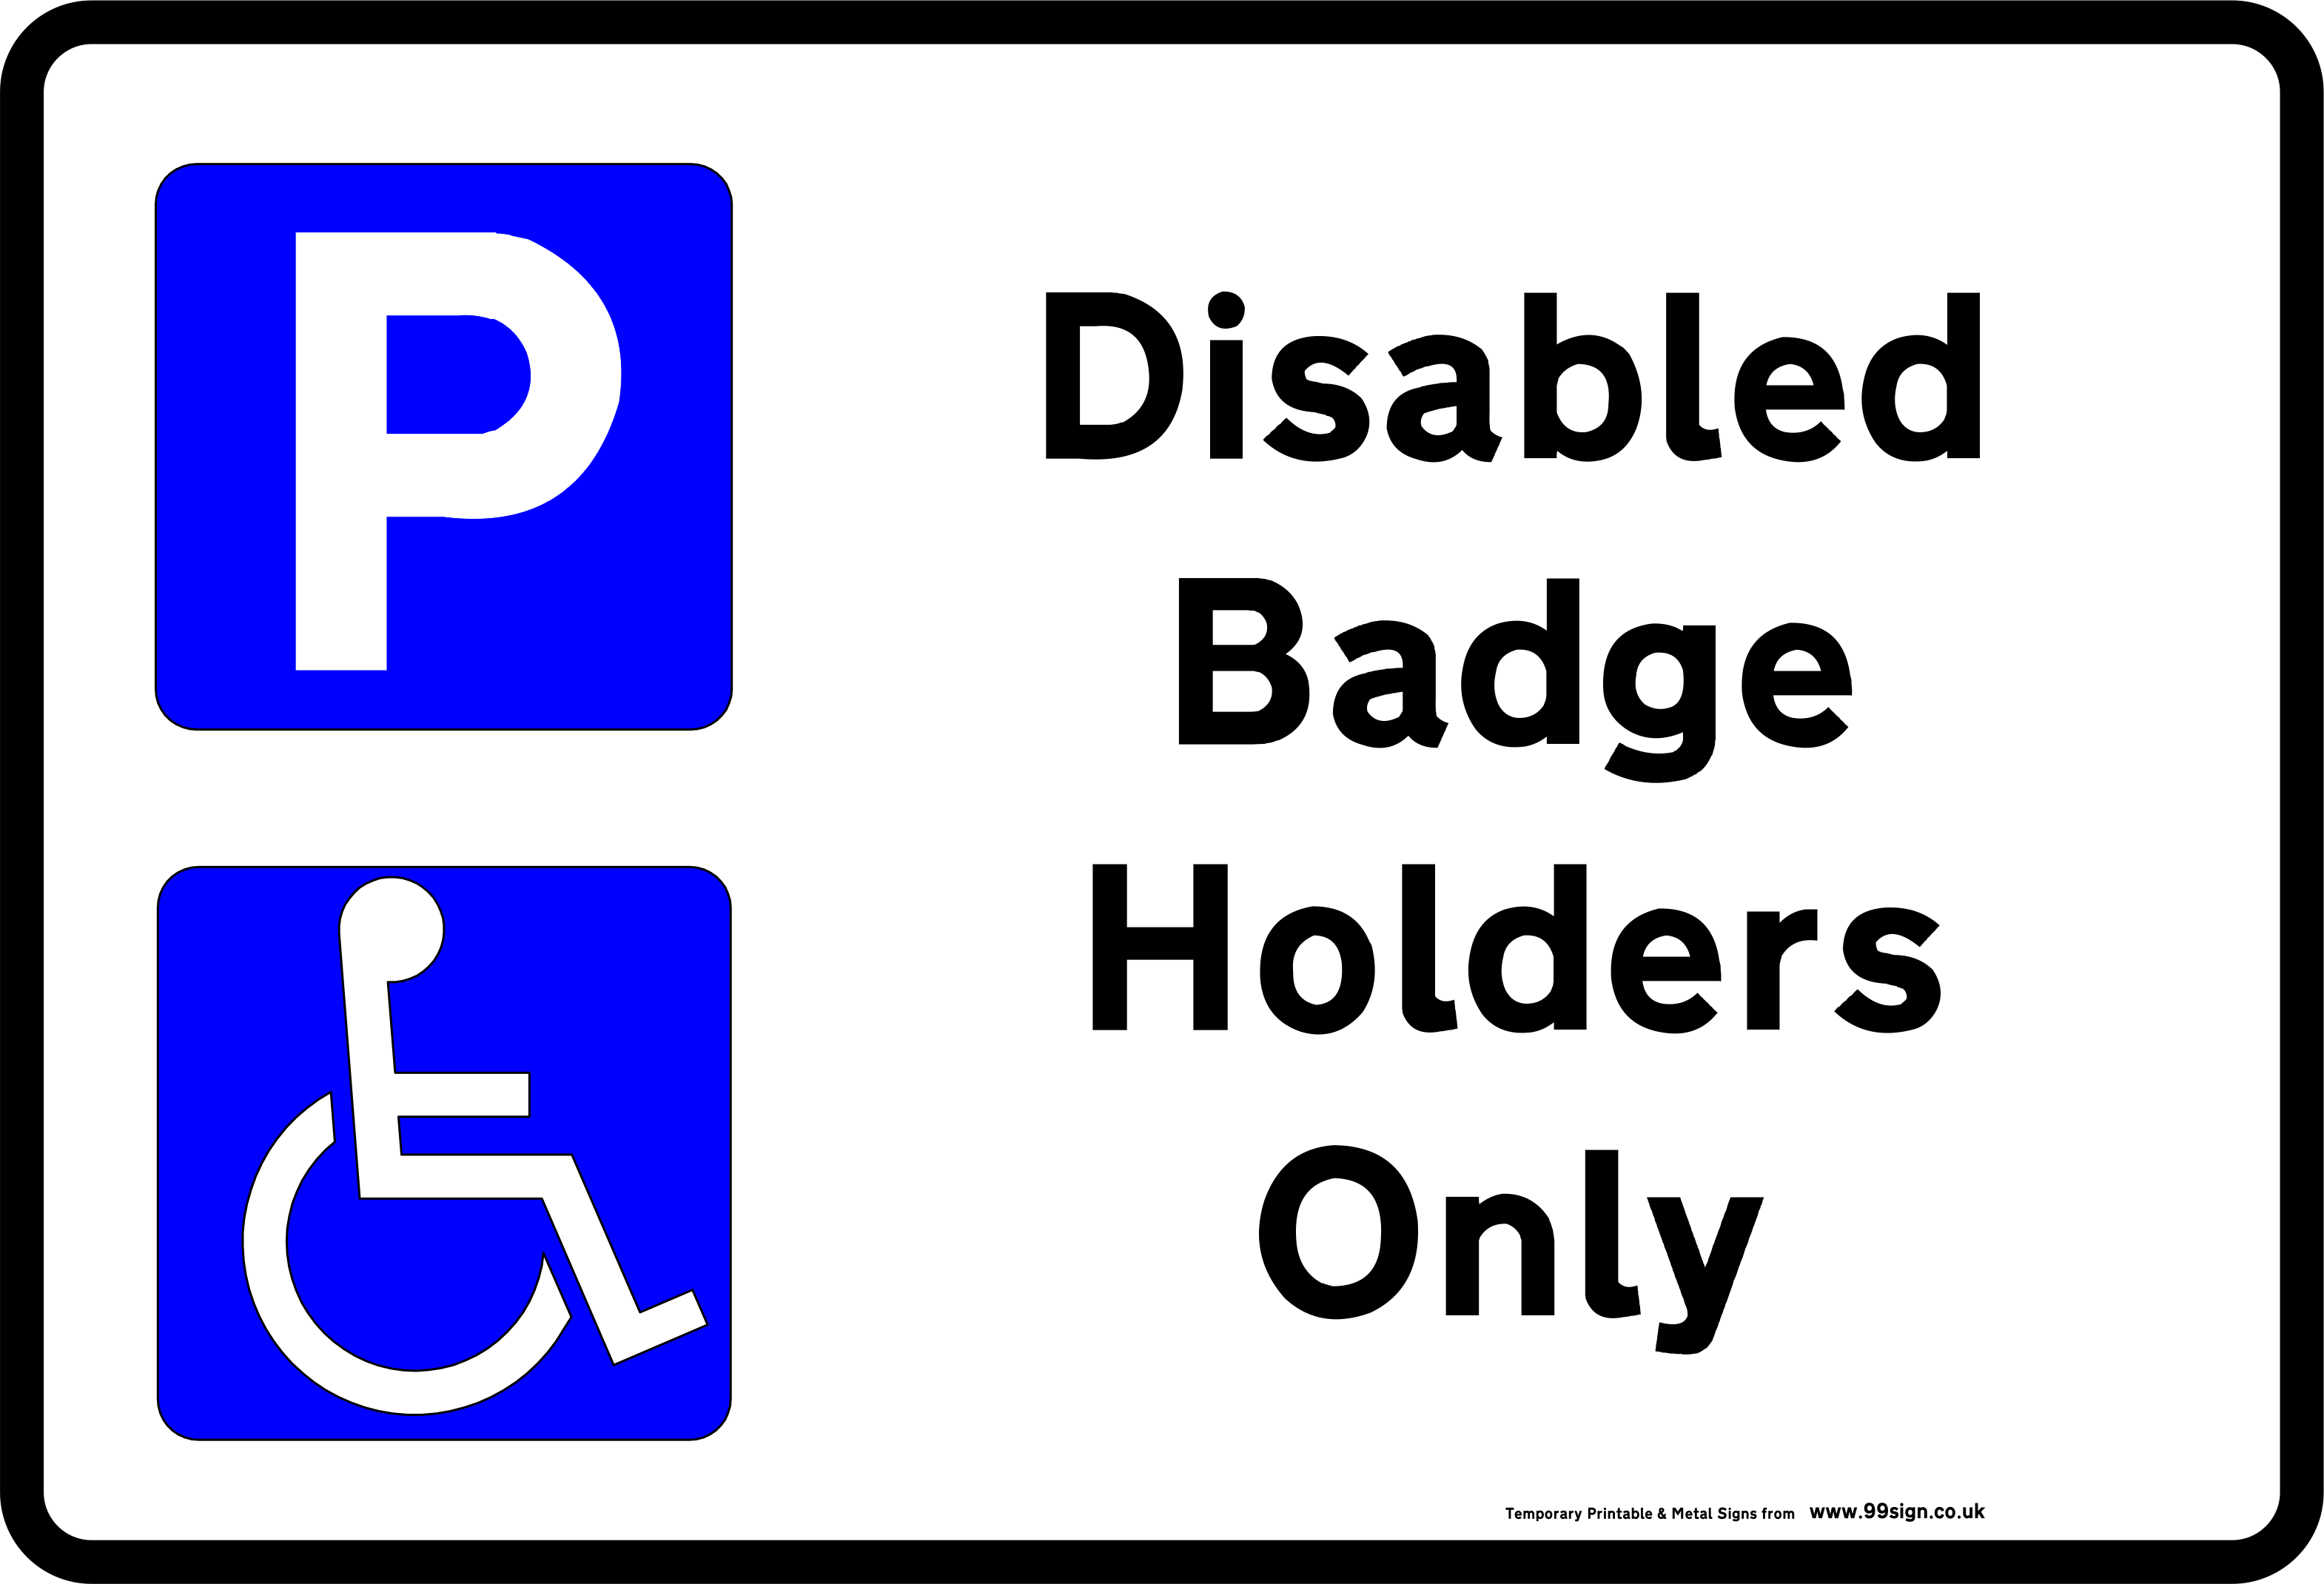 Printable Disabled Parking sign low cost vinyl or free template.